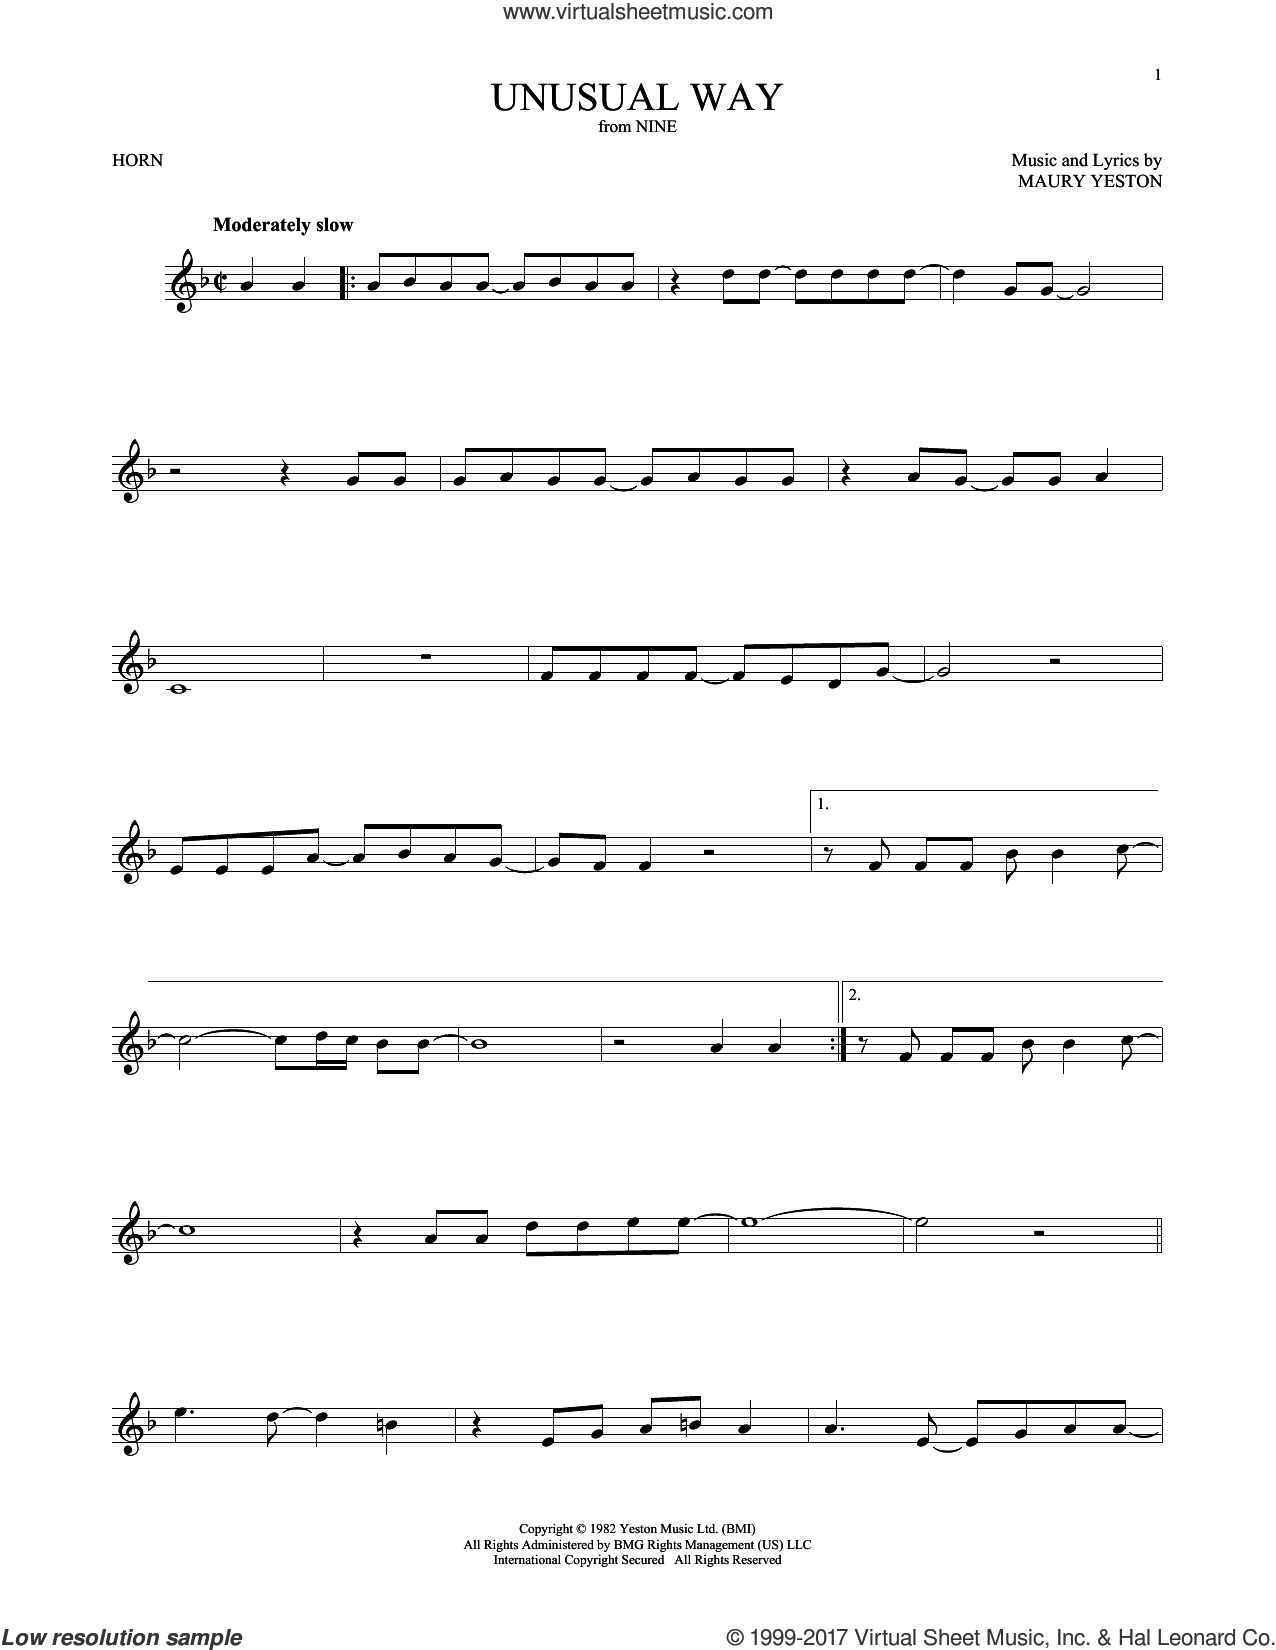 Unusual Way sheet music for horn solo by Maury Yeston and Linda Eder, intermediate skill level